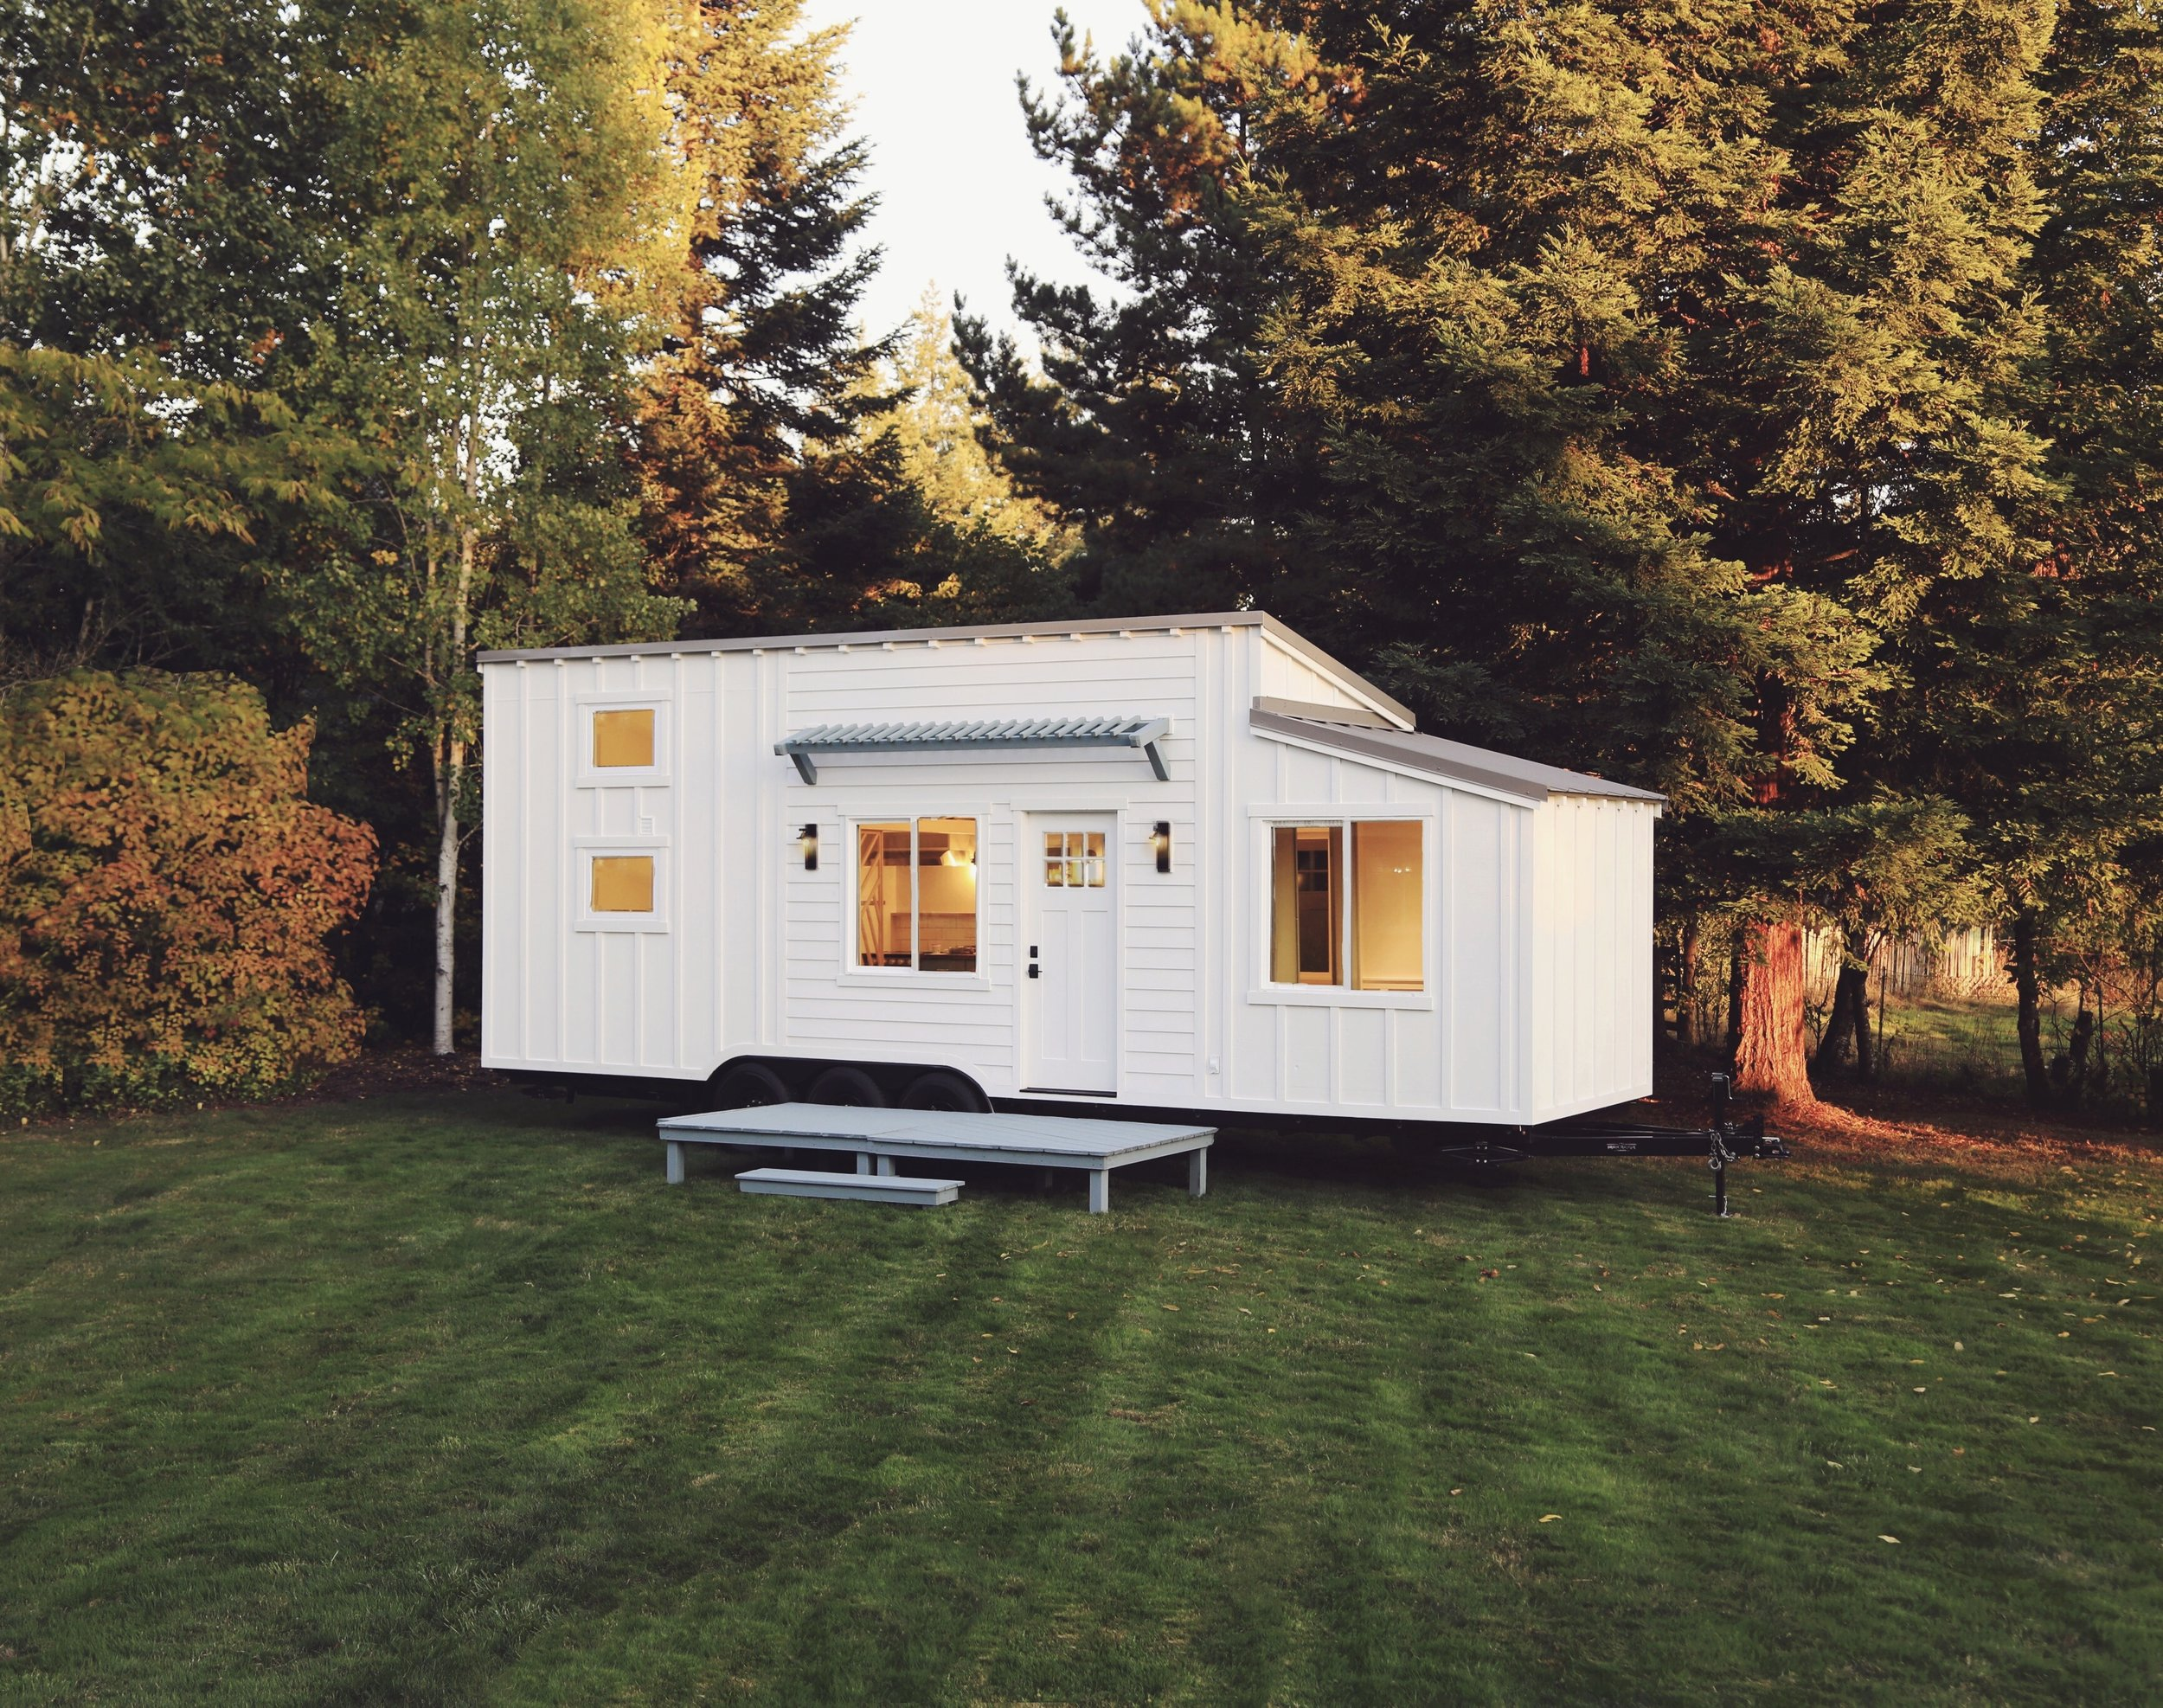 Cascade Tiny Home by Handcrafted Movement